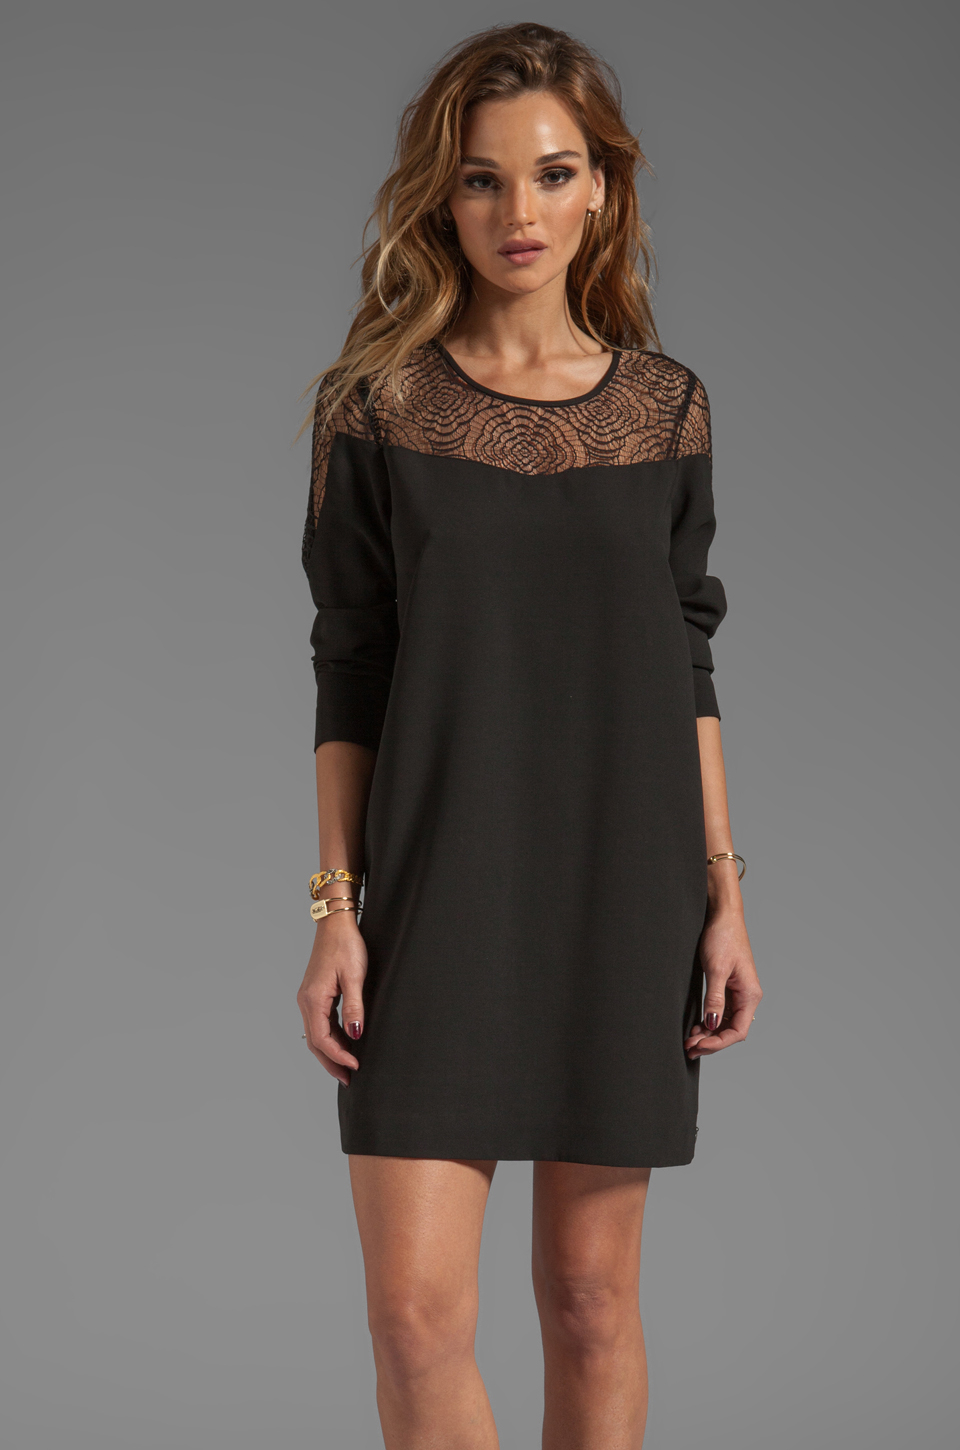 Apologise, but, Brunette black lace dress casually